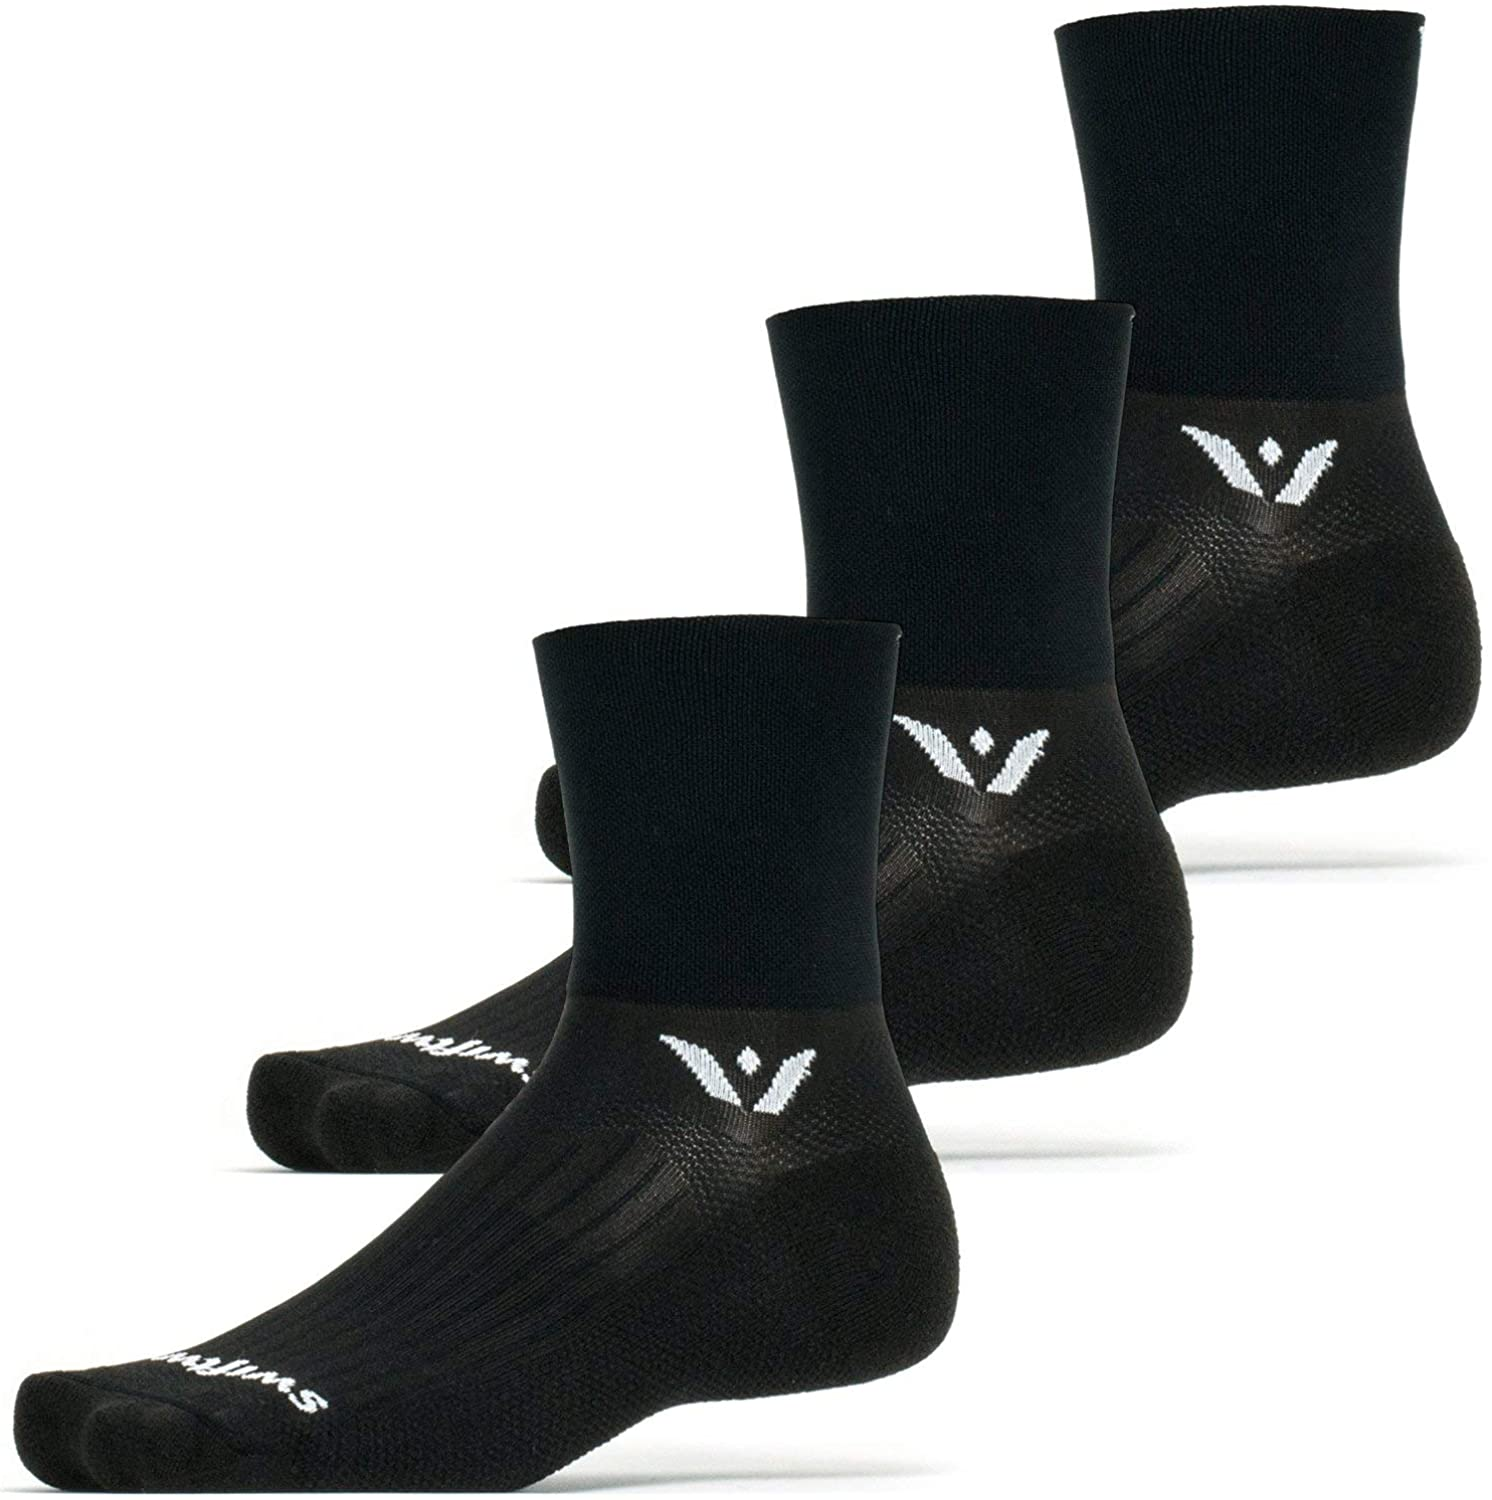 Swiftwick- ASPIRE FOUR (3 Pairs) Cycling & Trail Running Socks, Compression Fit